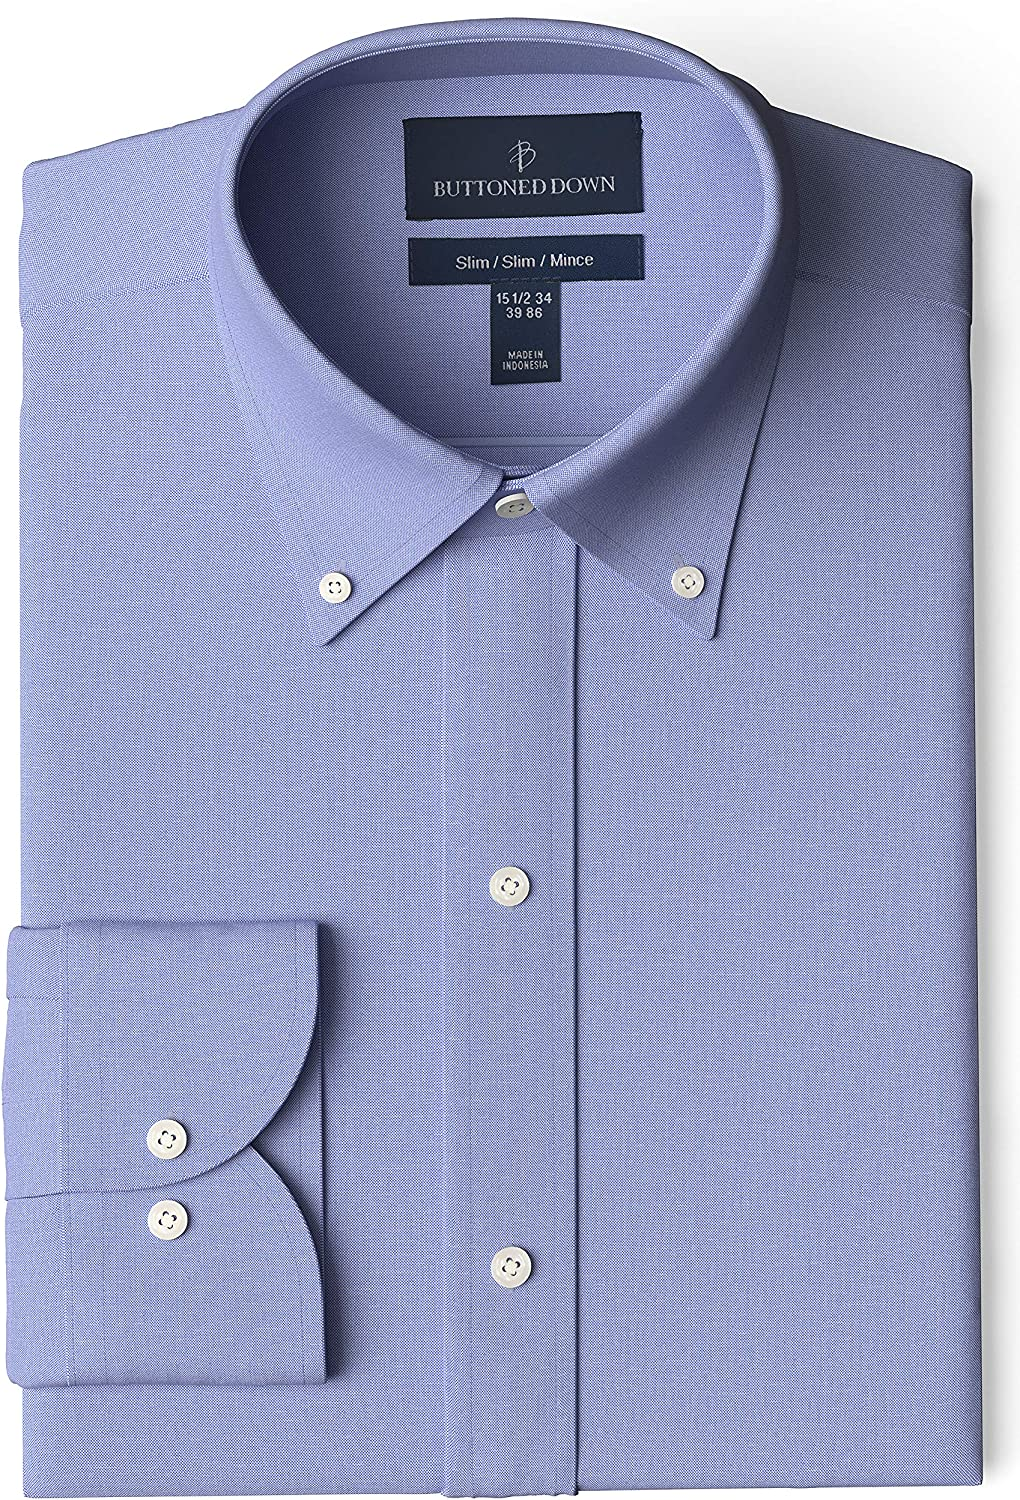 Crafted Collar Mens Classic Fit Button-Down Collar Casual Shirt 18 Neck 34 Sleeve Blue Stripe